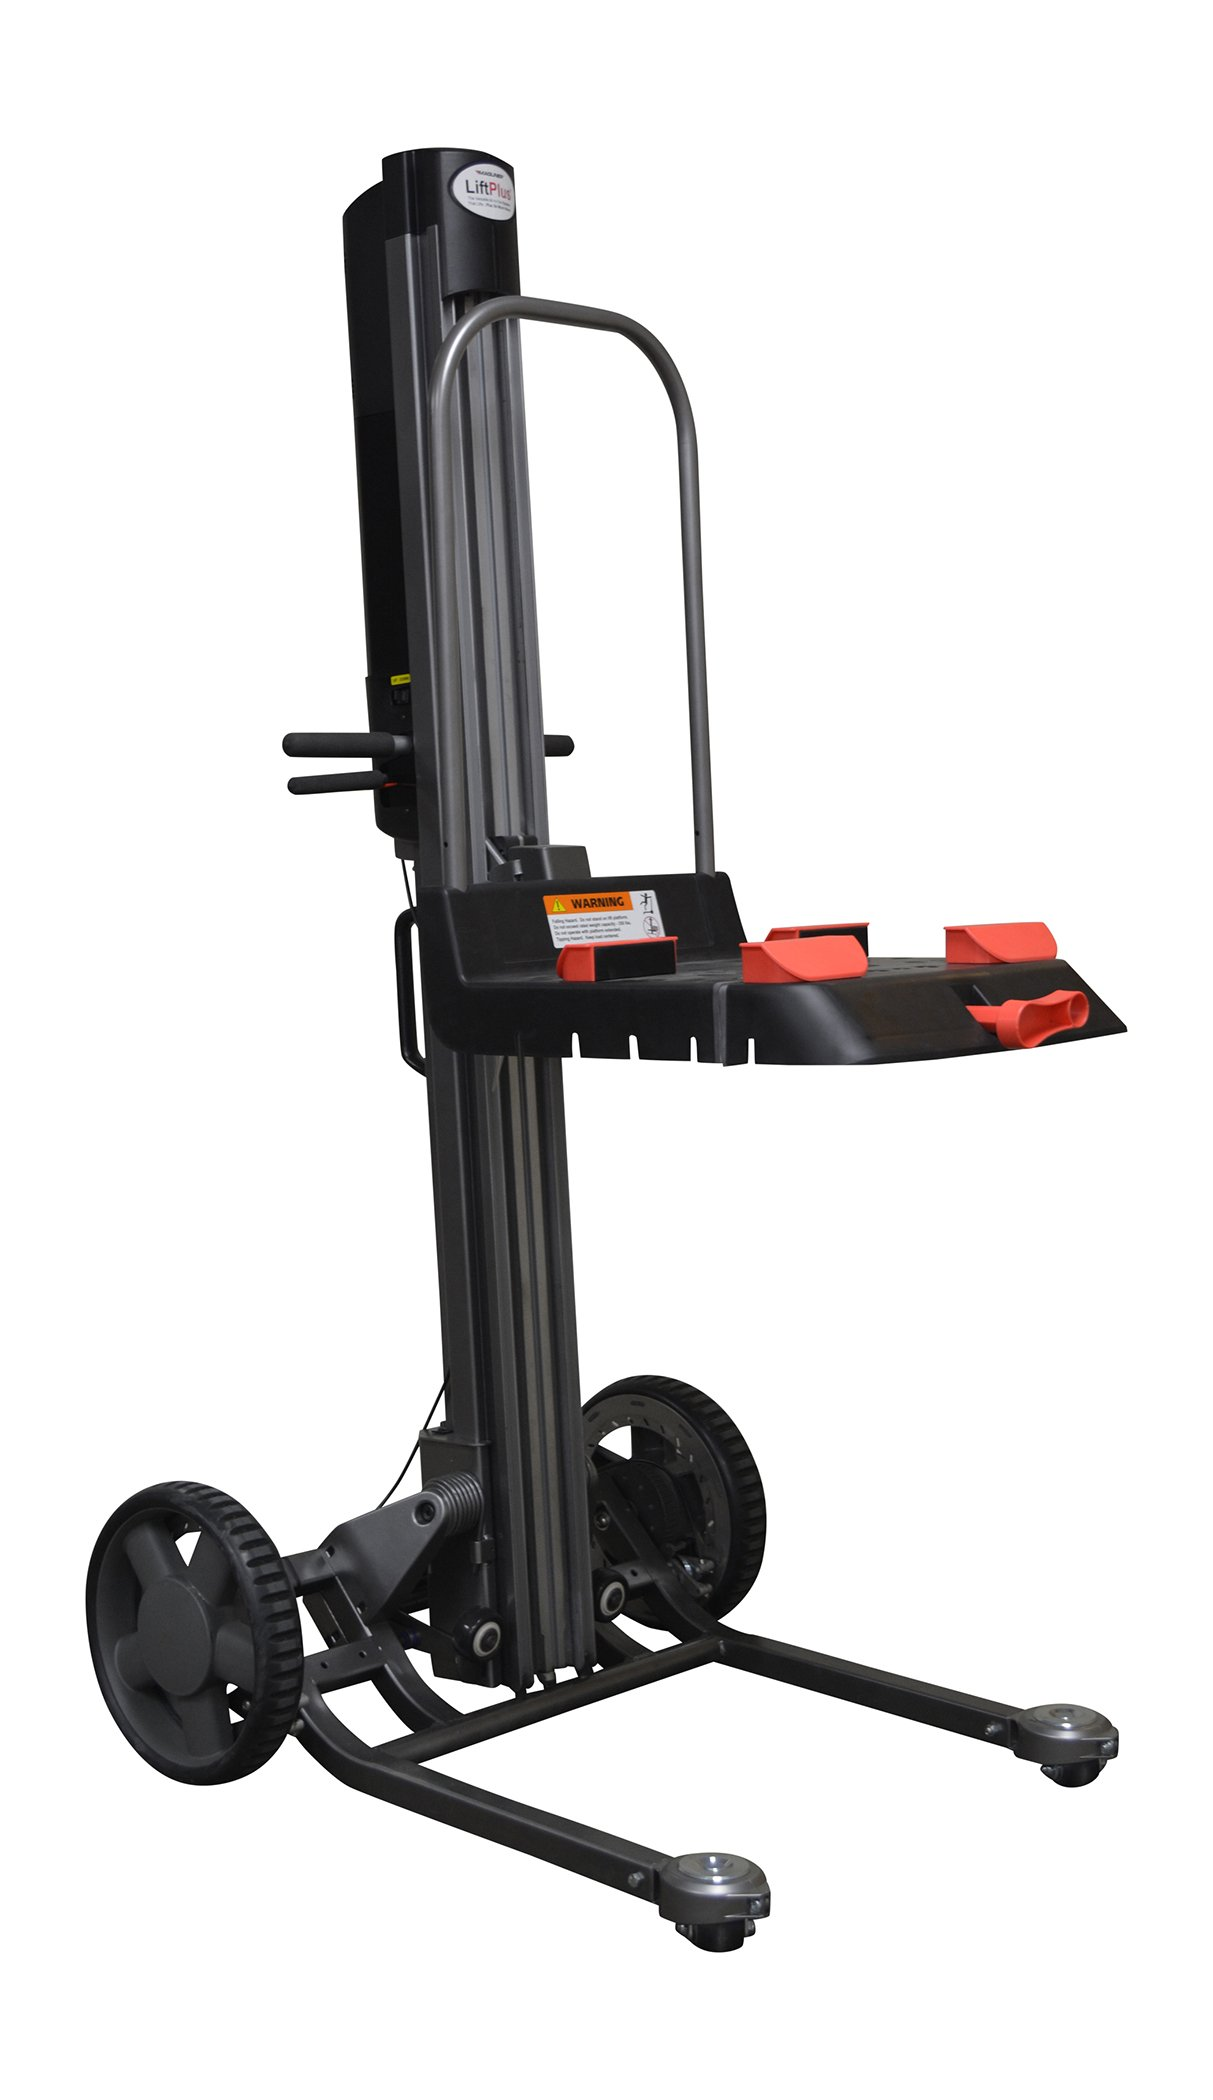 Magliner LPS4825NA1 Magline Liftplus with Work Bench Attachment, 48'' Lift Height, 350 lb. Capacity, 60'' Height, 33'' Width, 350 fl. oz. Lift Capacity by Magliner (Image #1)